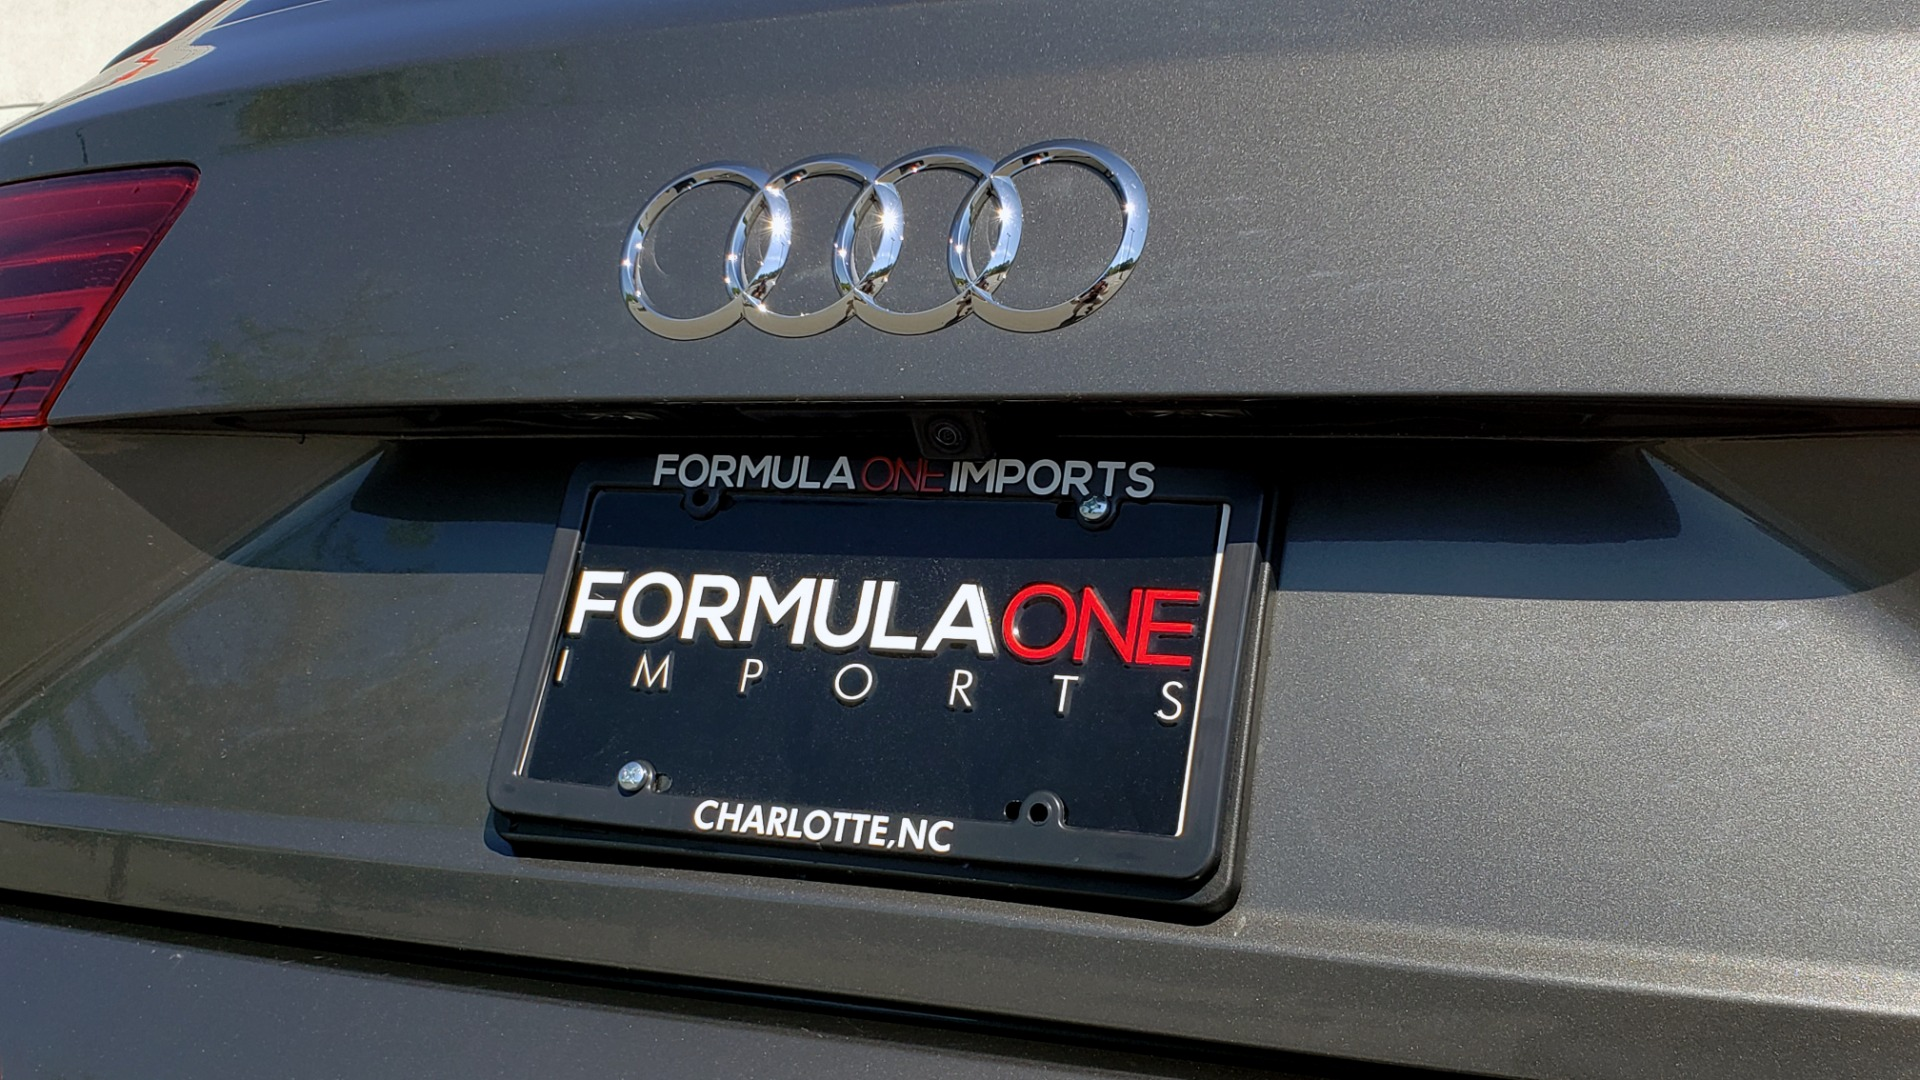 Used 2018 Audi Q7 PREMIUM PLUS TIPTRONIC / NAV / SUNROOF / VISION PKG / CLD WTHR / REARVIEW for sale $44,395 at Formula Imports in Charlotte NC 28227 34